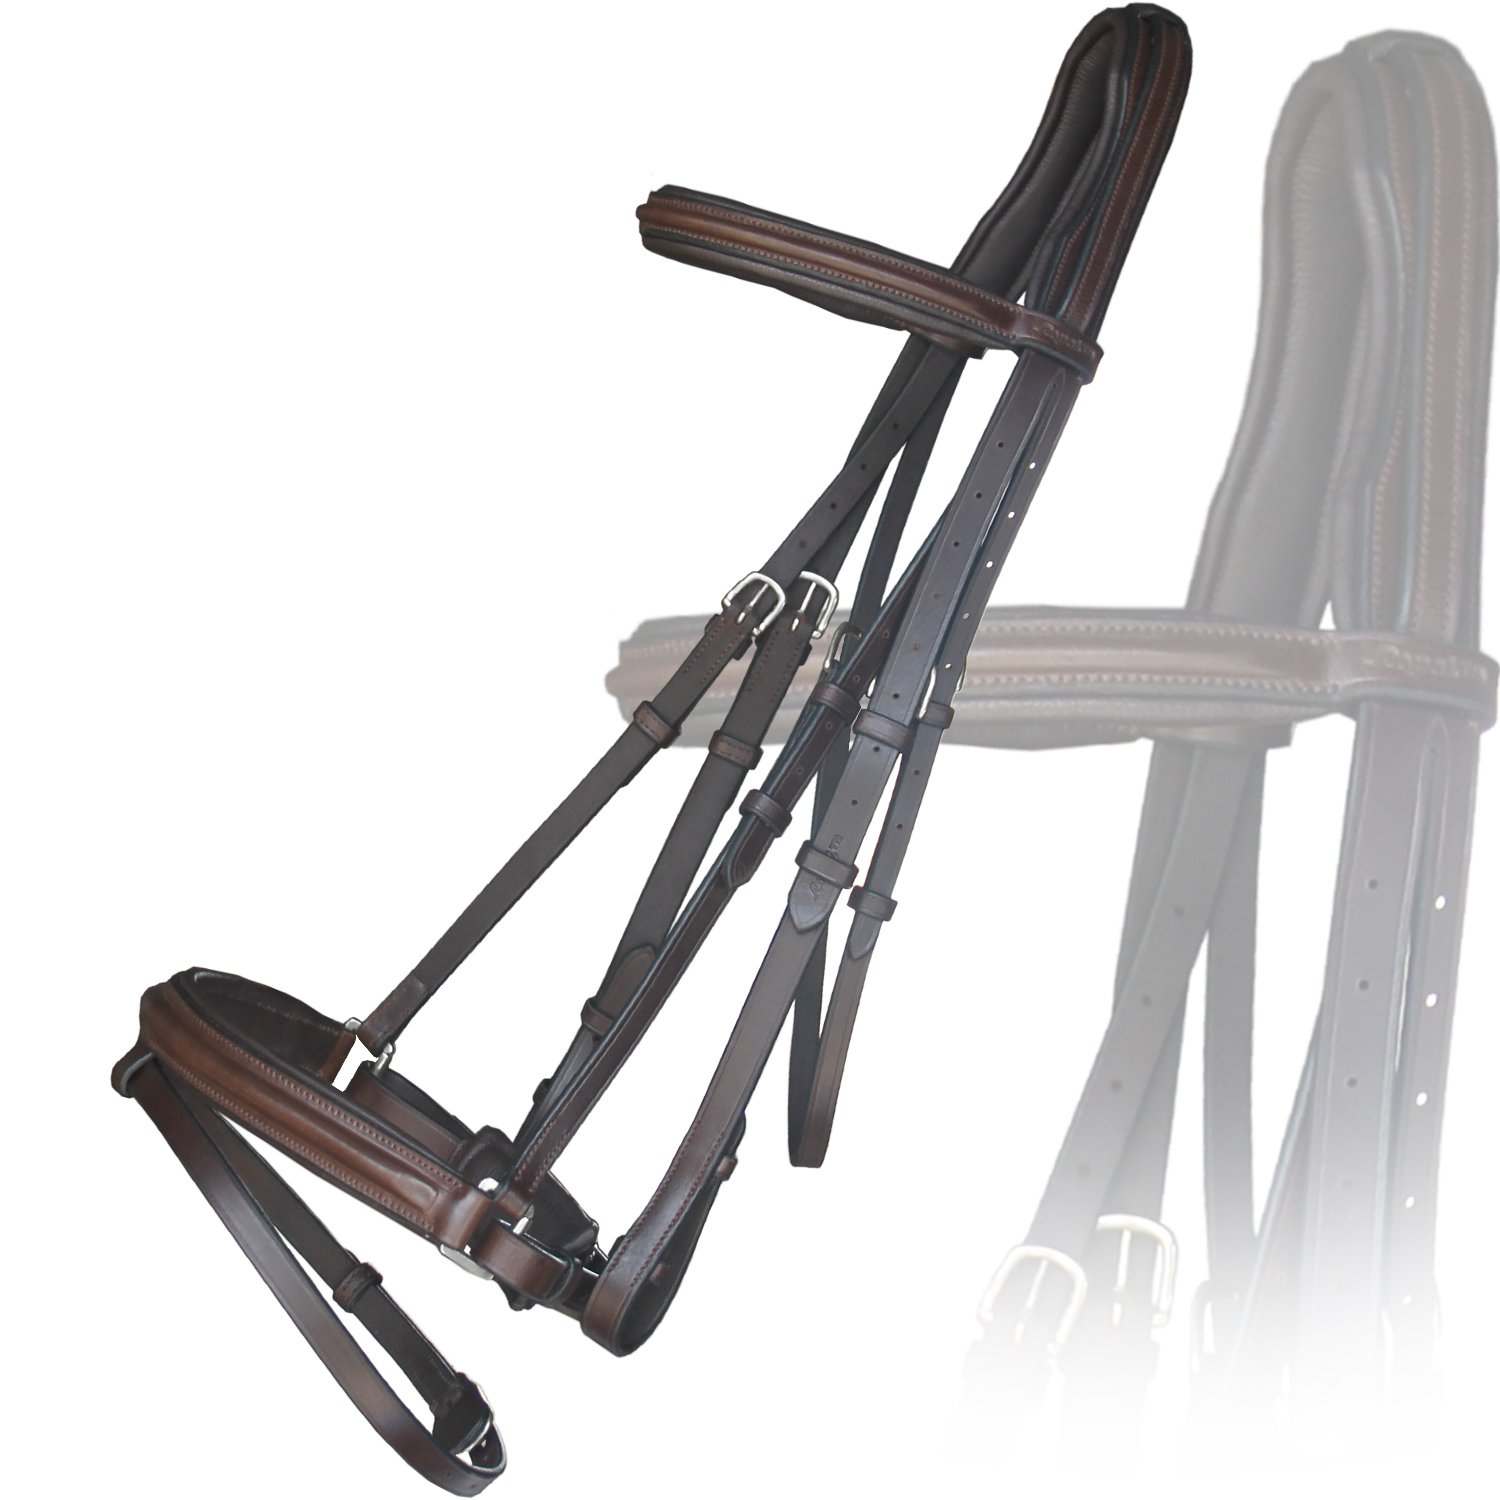 Havana (Choco Brown) Small (Pony)Exion Anti Pressure Cut Head Piece Dressage Leather Bridle with PP Rubber Grip Reins and Stainless Steel Buckles   Equestrian Show Jumping Padded Bridle Set   Oak Brown   Over